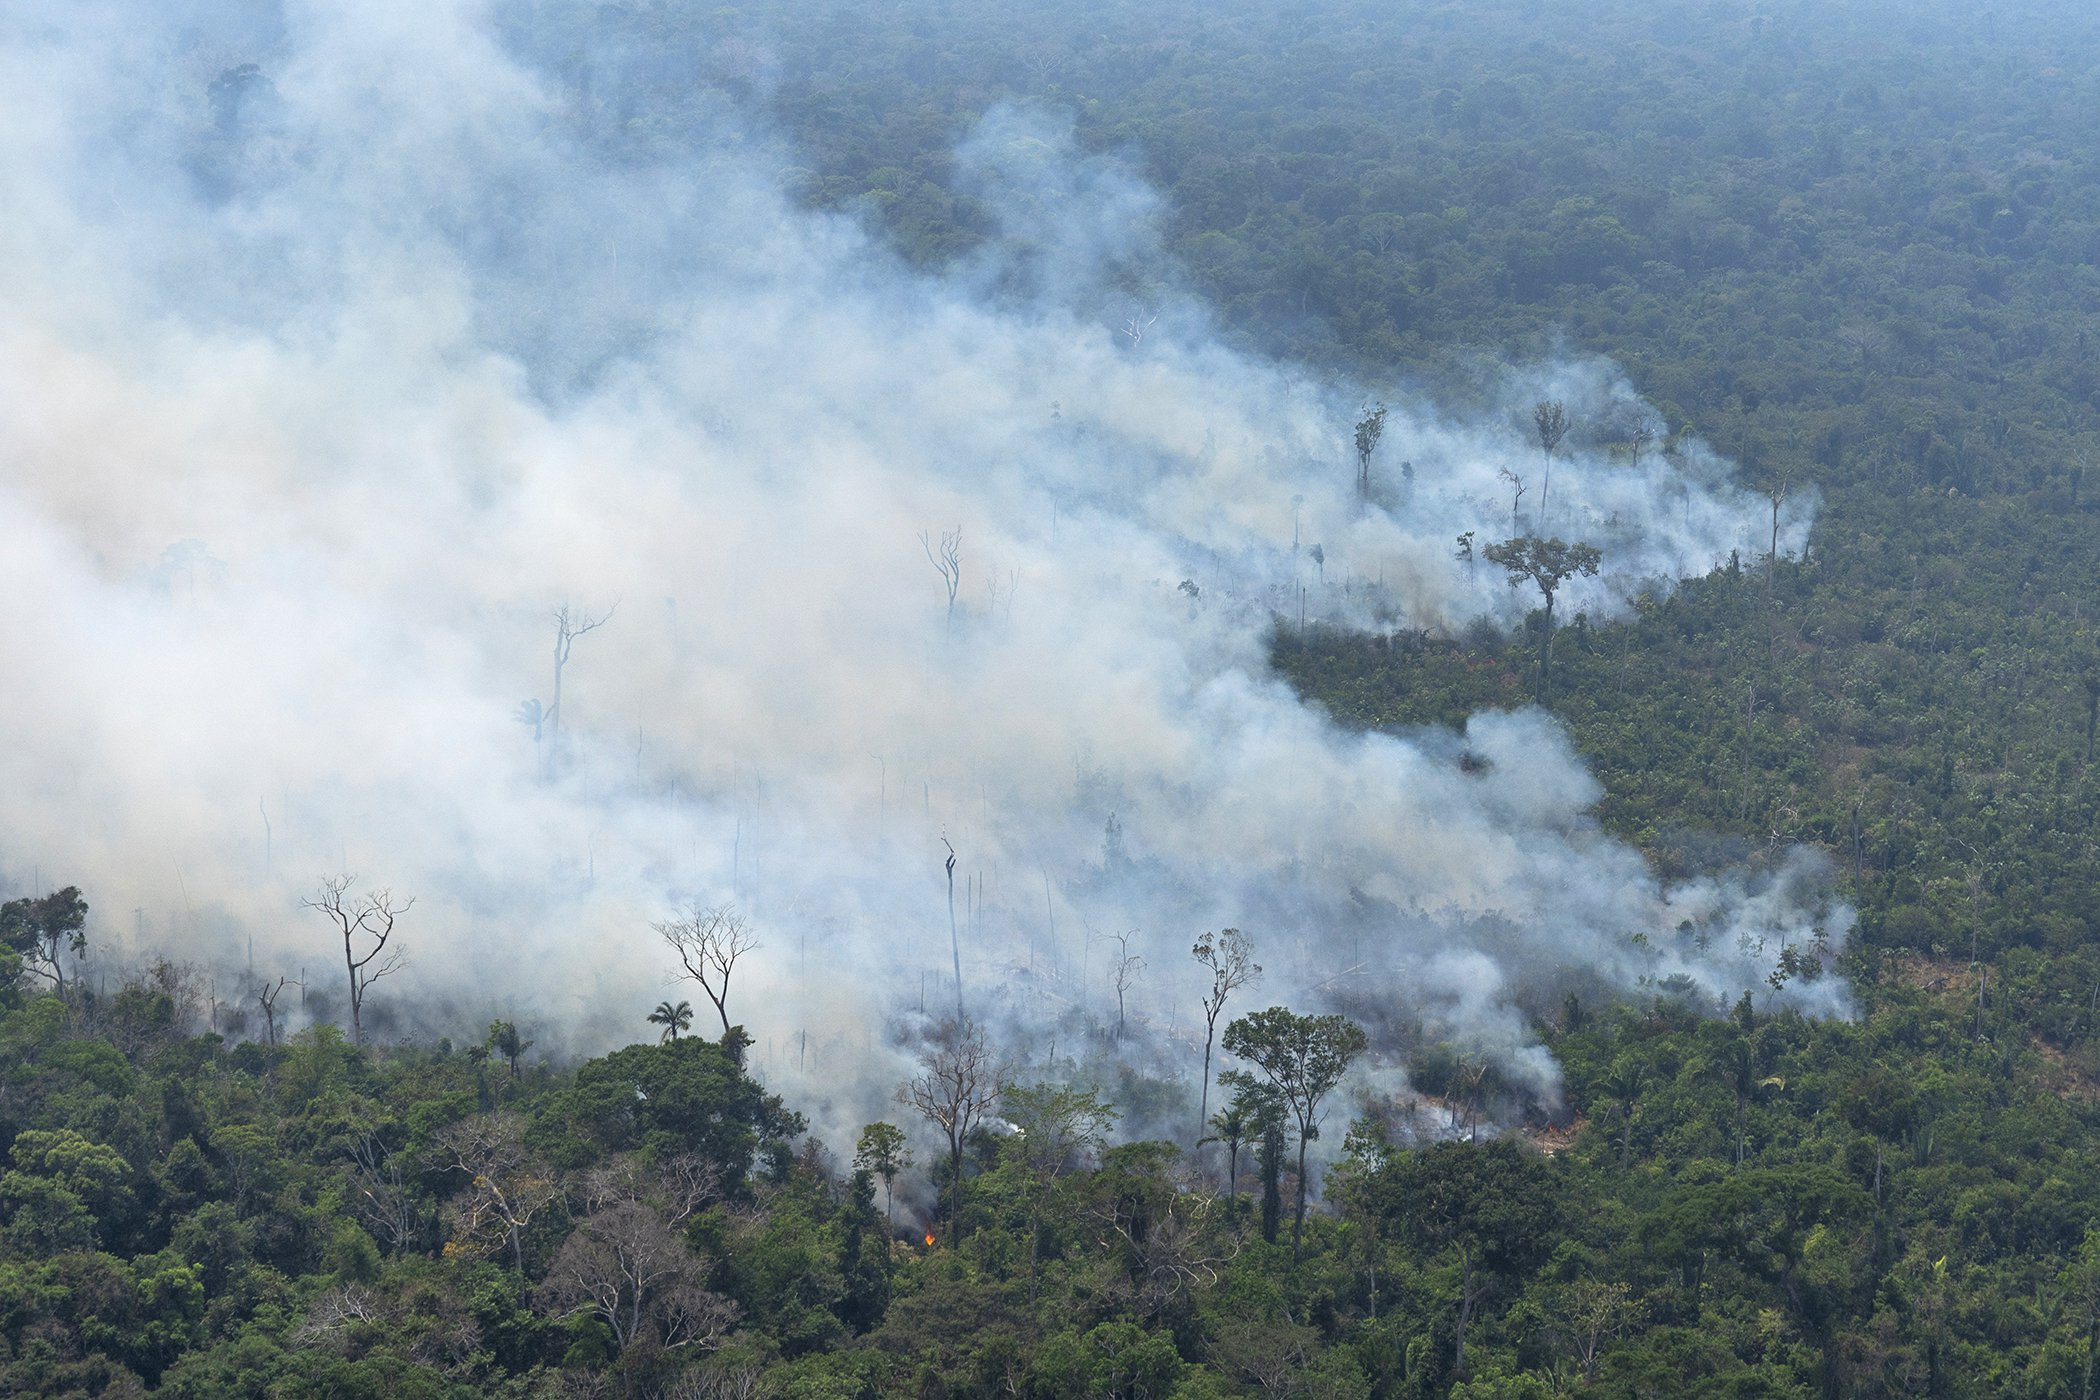 Amazon-Climate-Change-Deforestation-Wildfires-Brazil.jpg